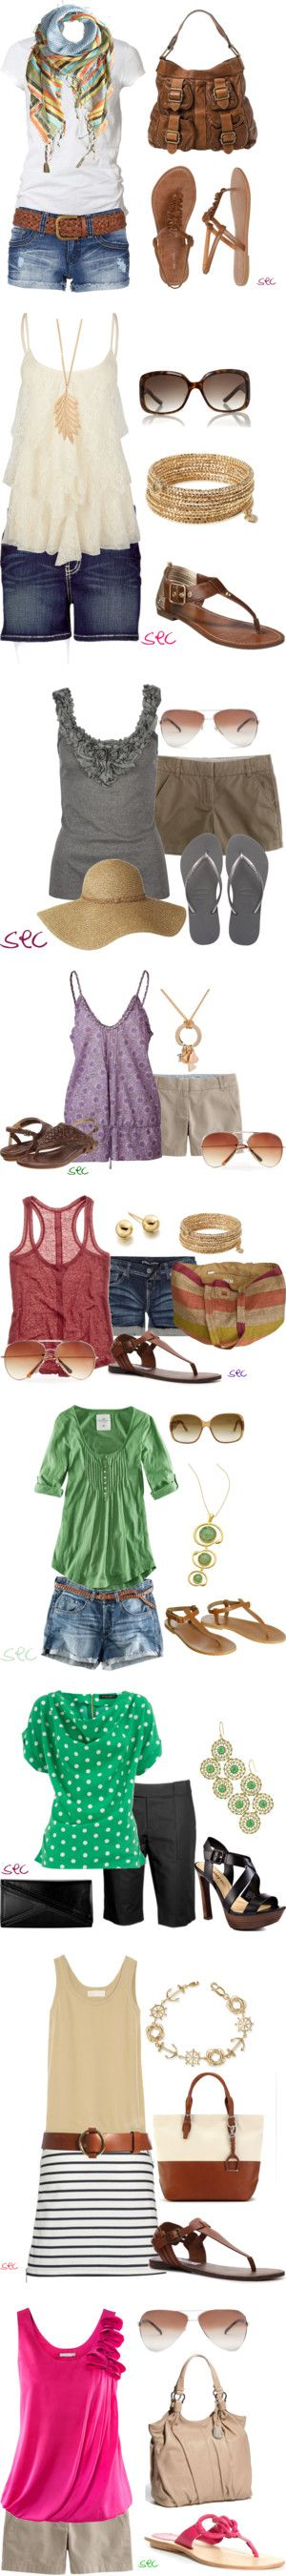 Summer outfits: Super Cute Outfits, Summer Looks, Outfit Ideas, Summer Style, Casual Summer Outfits, Cute Summer Outfits, Outfits Ideas, Summer Clothing, Summer Wardrobe